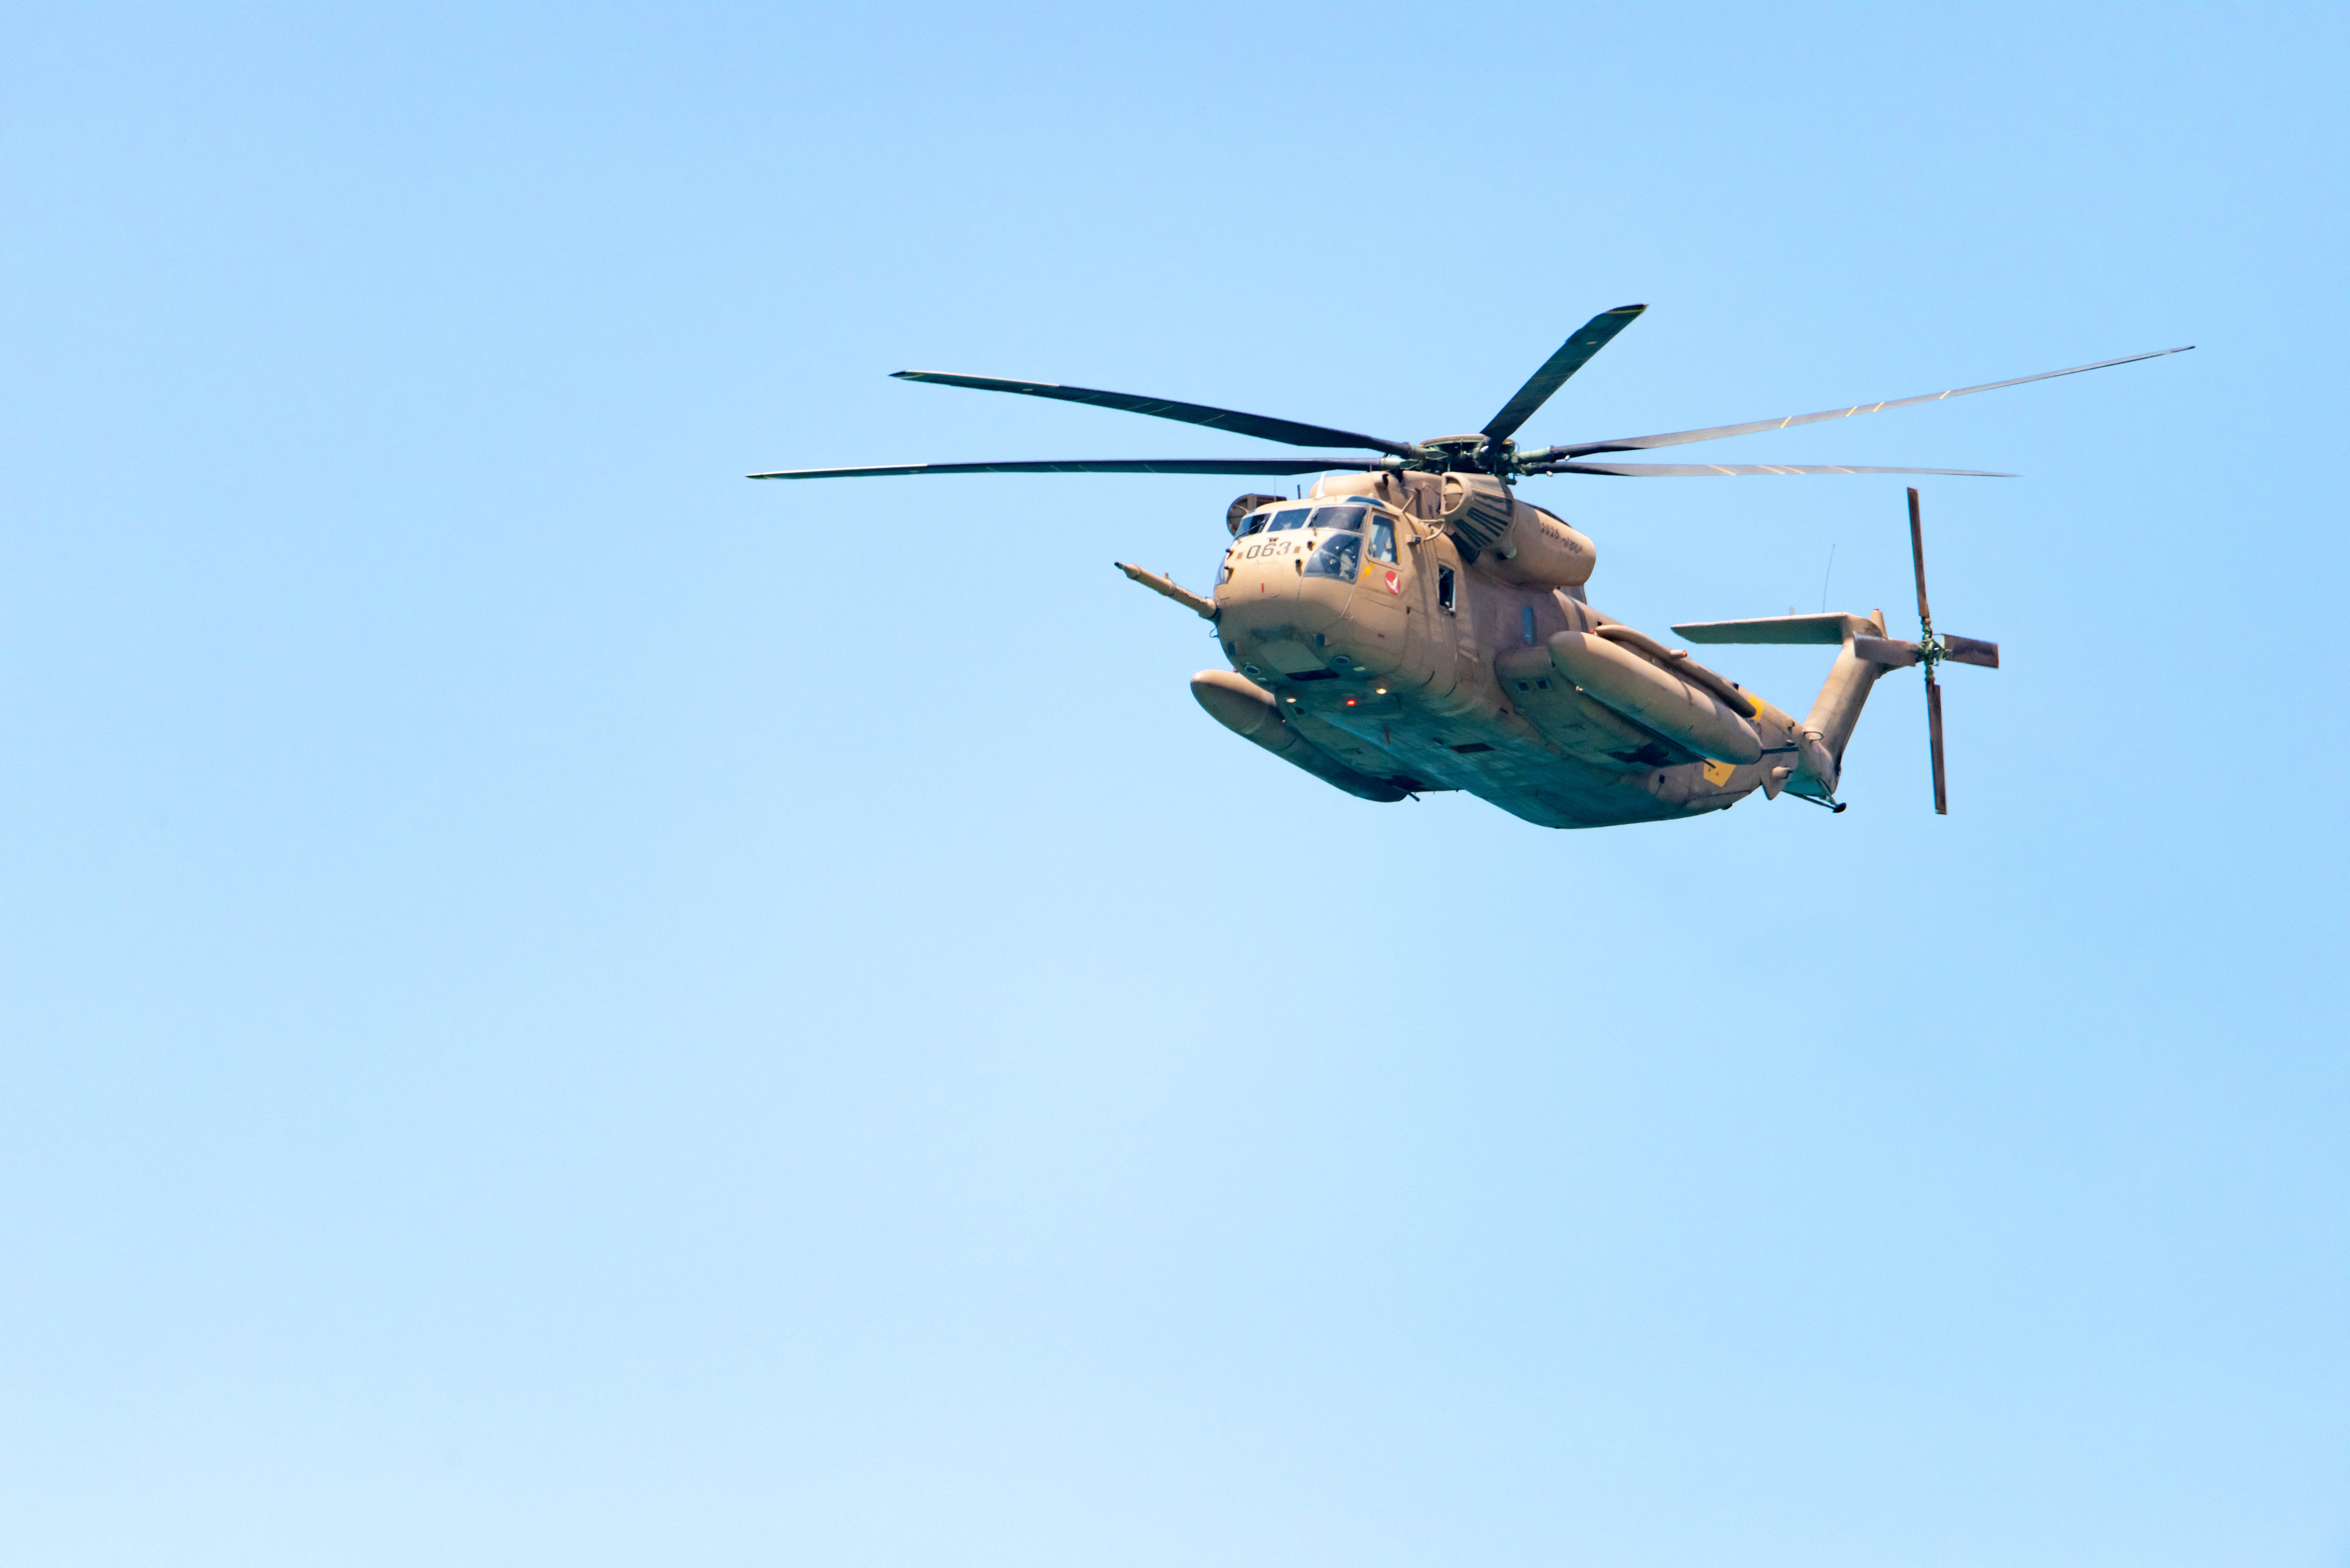 gray and brown helicopter